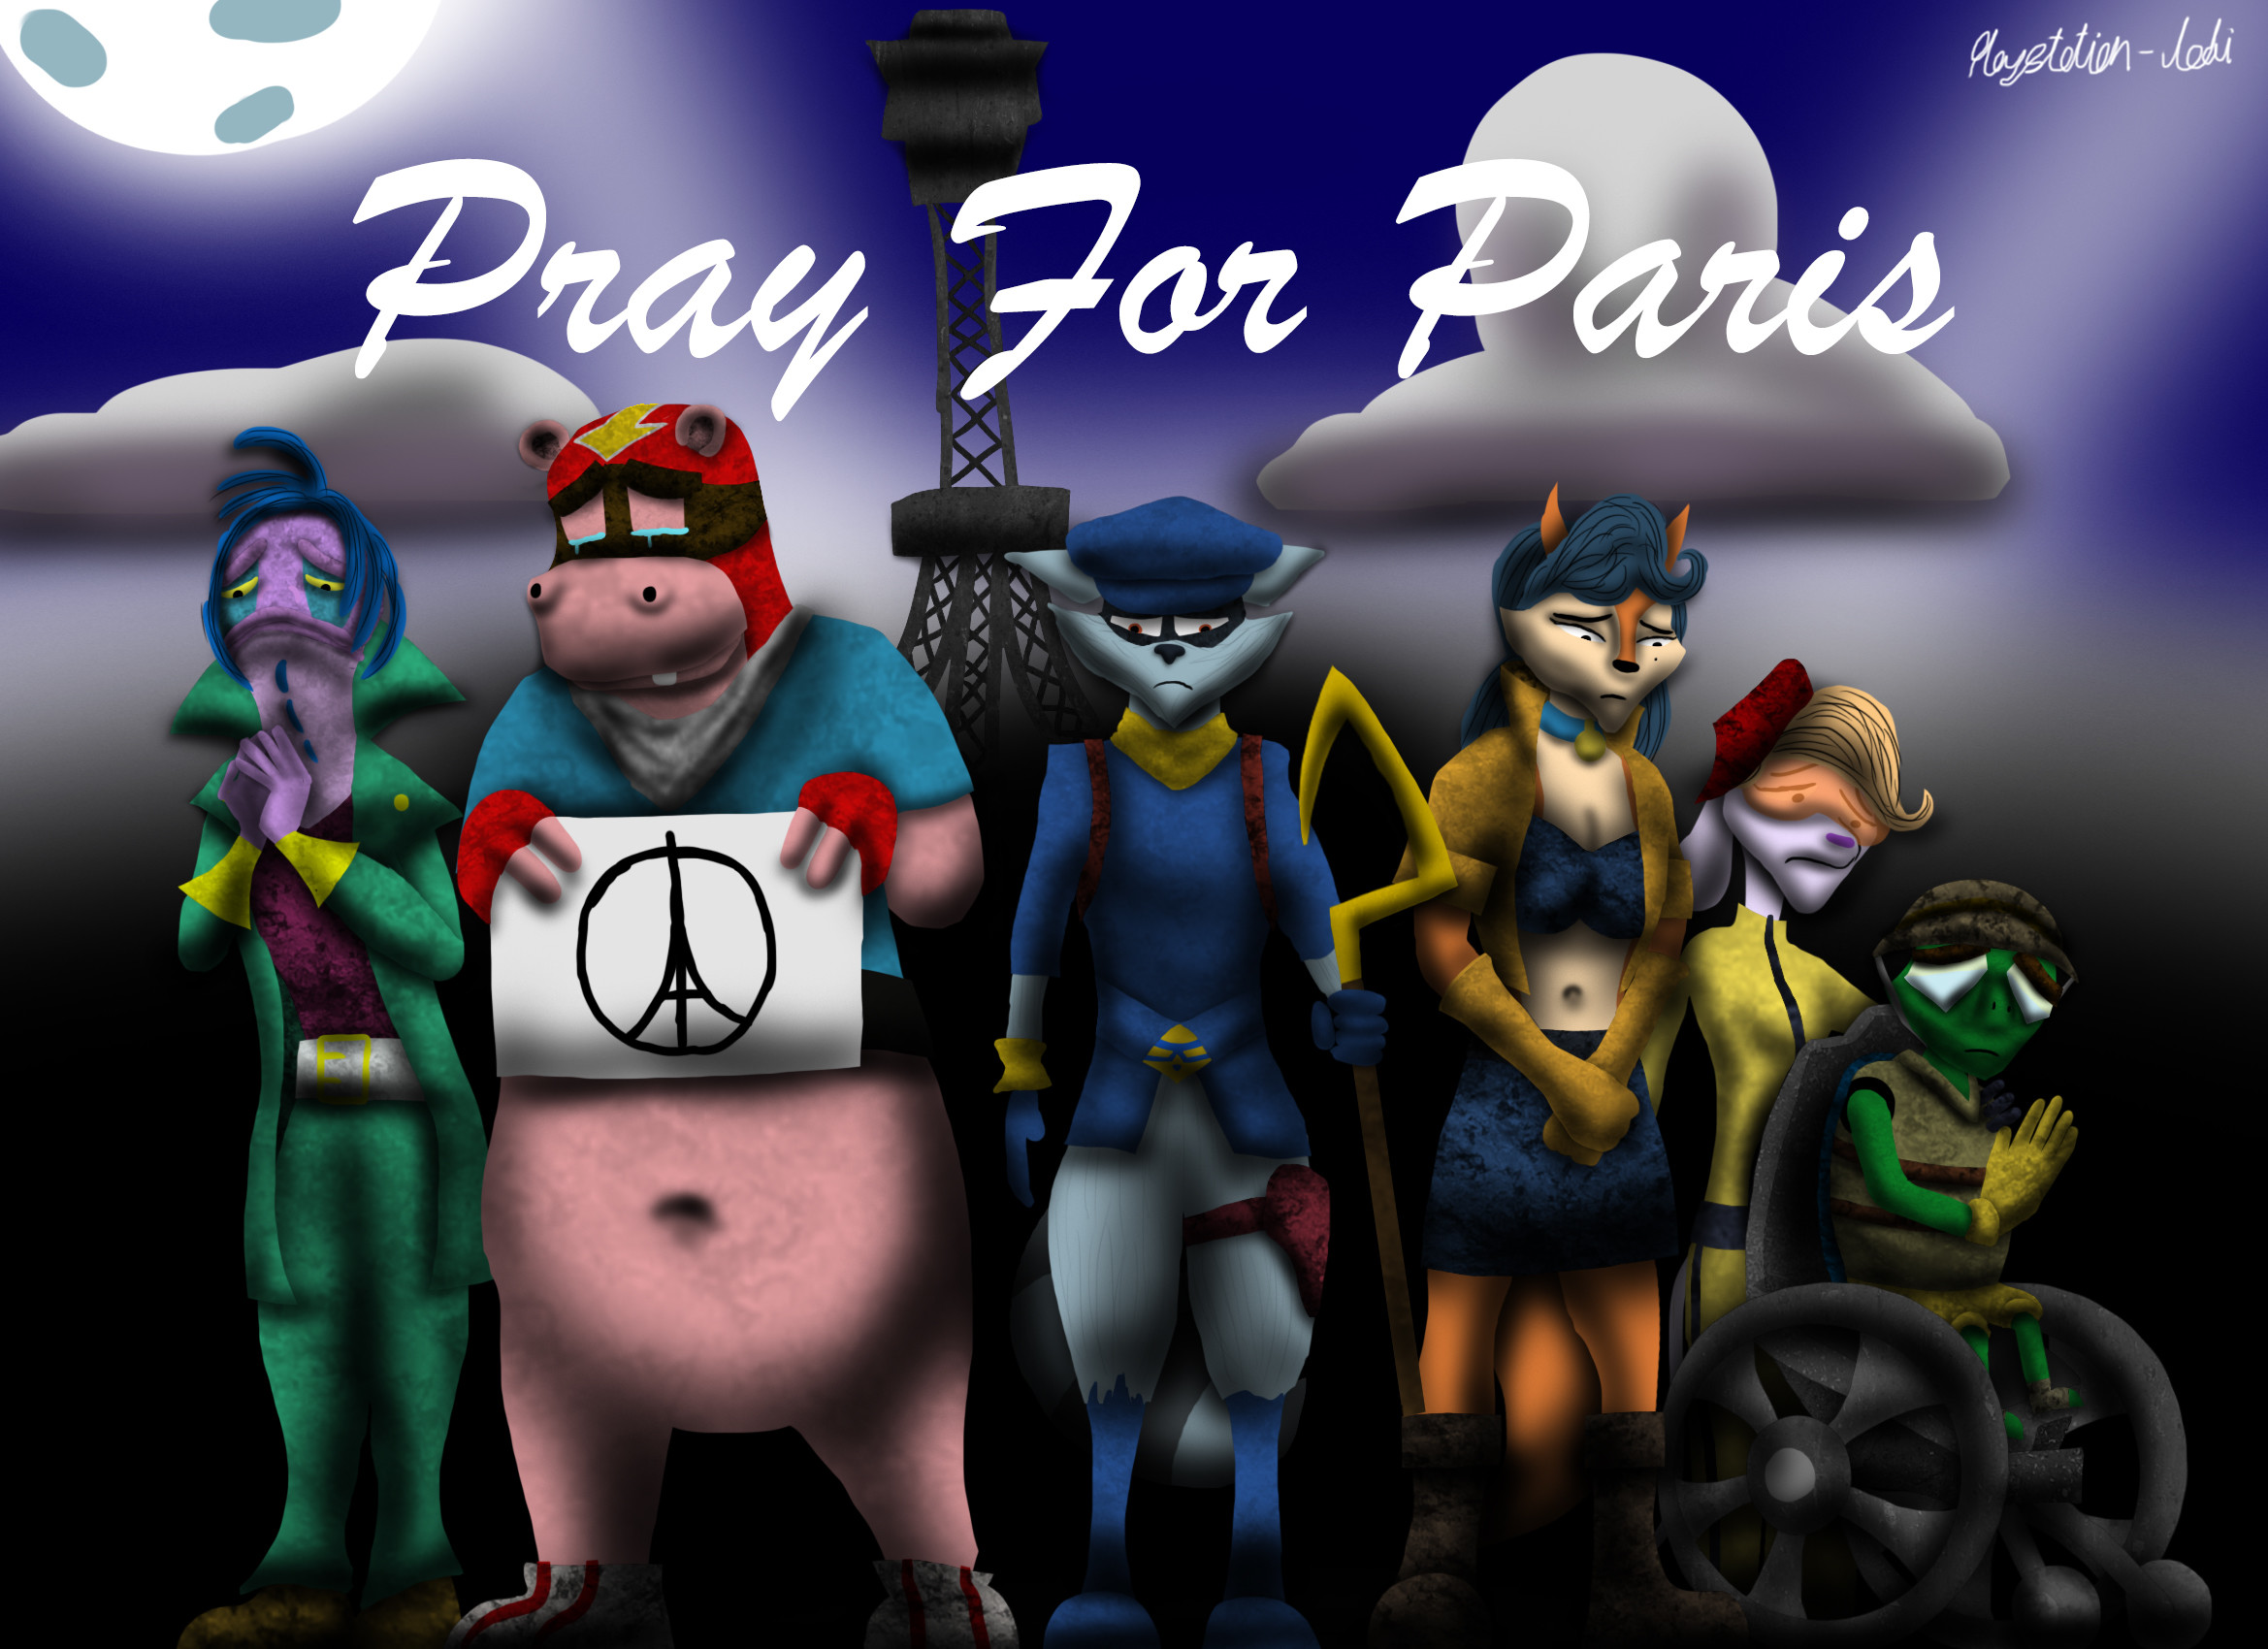 … The Cooper Gang Prays for Paris by Playstation-Jedi